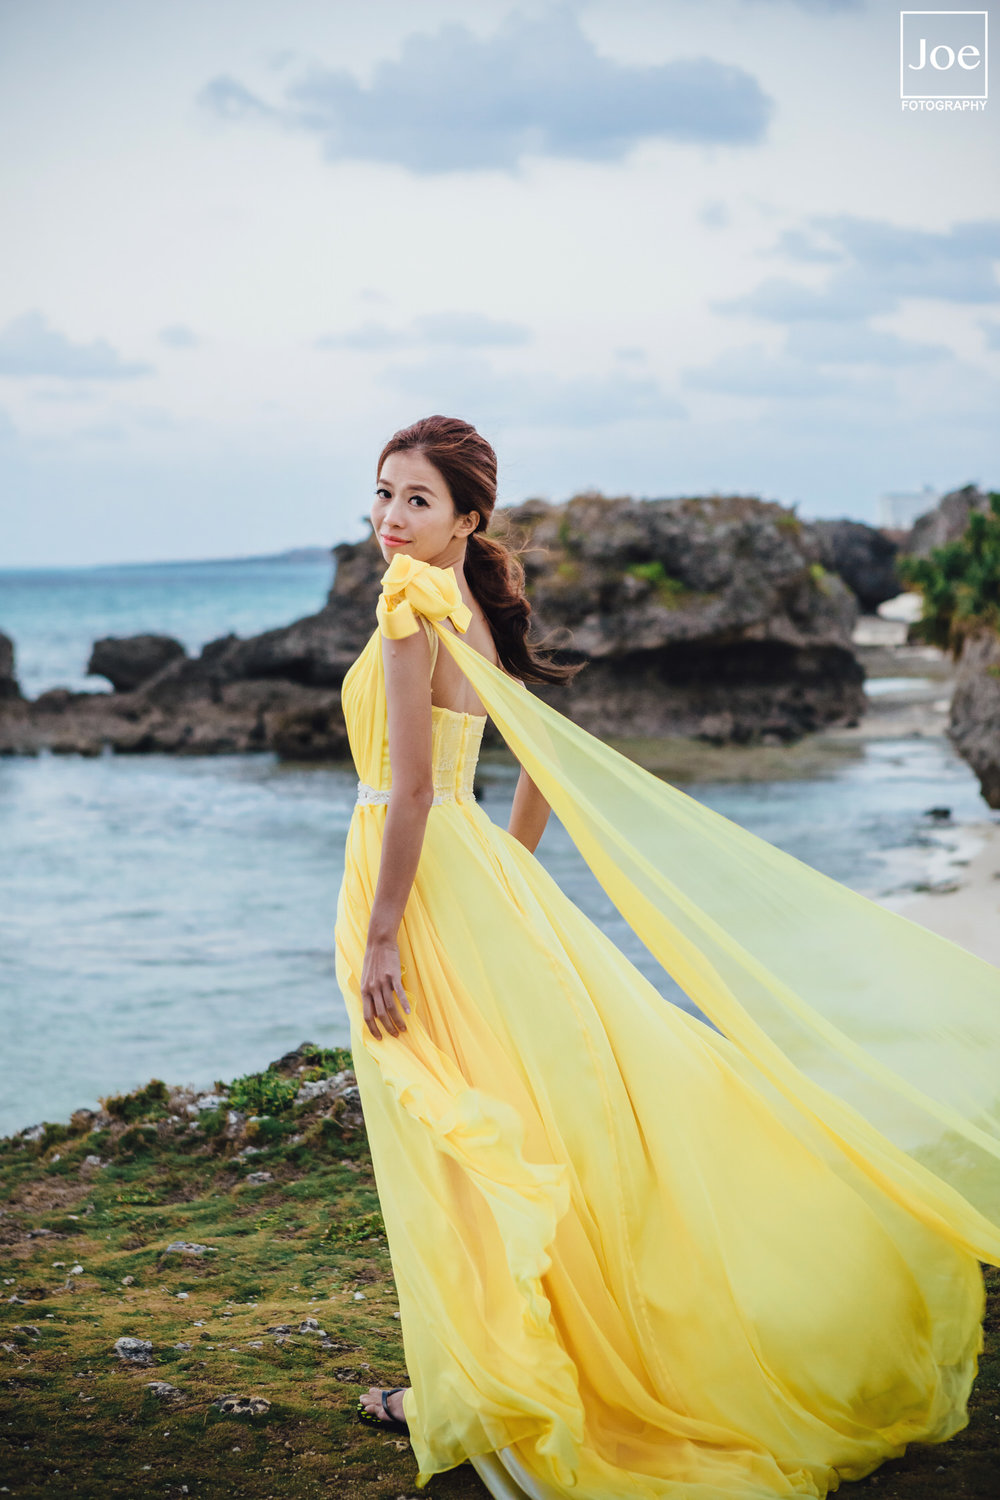 30-okinawa-nirai-beach-pre-wedding-melody-amigo-joe-fotography.jpg